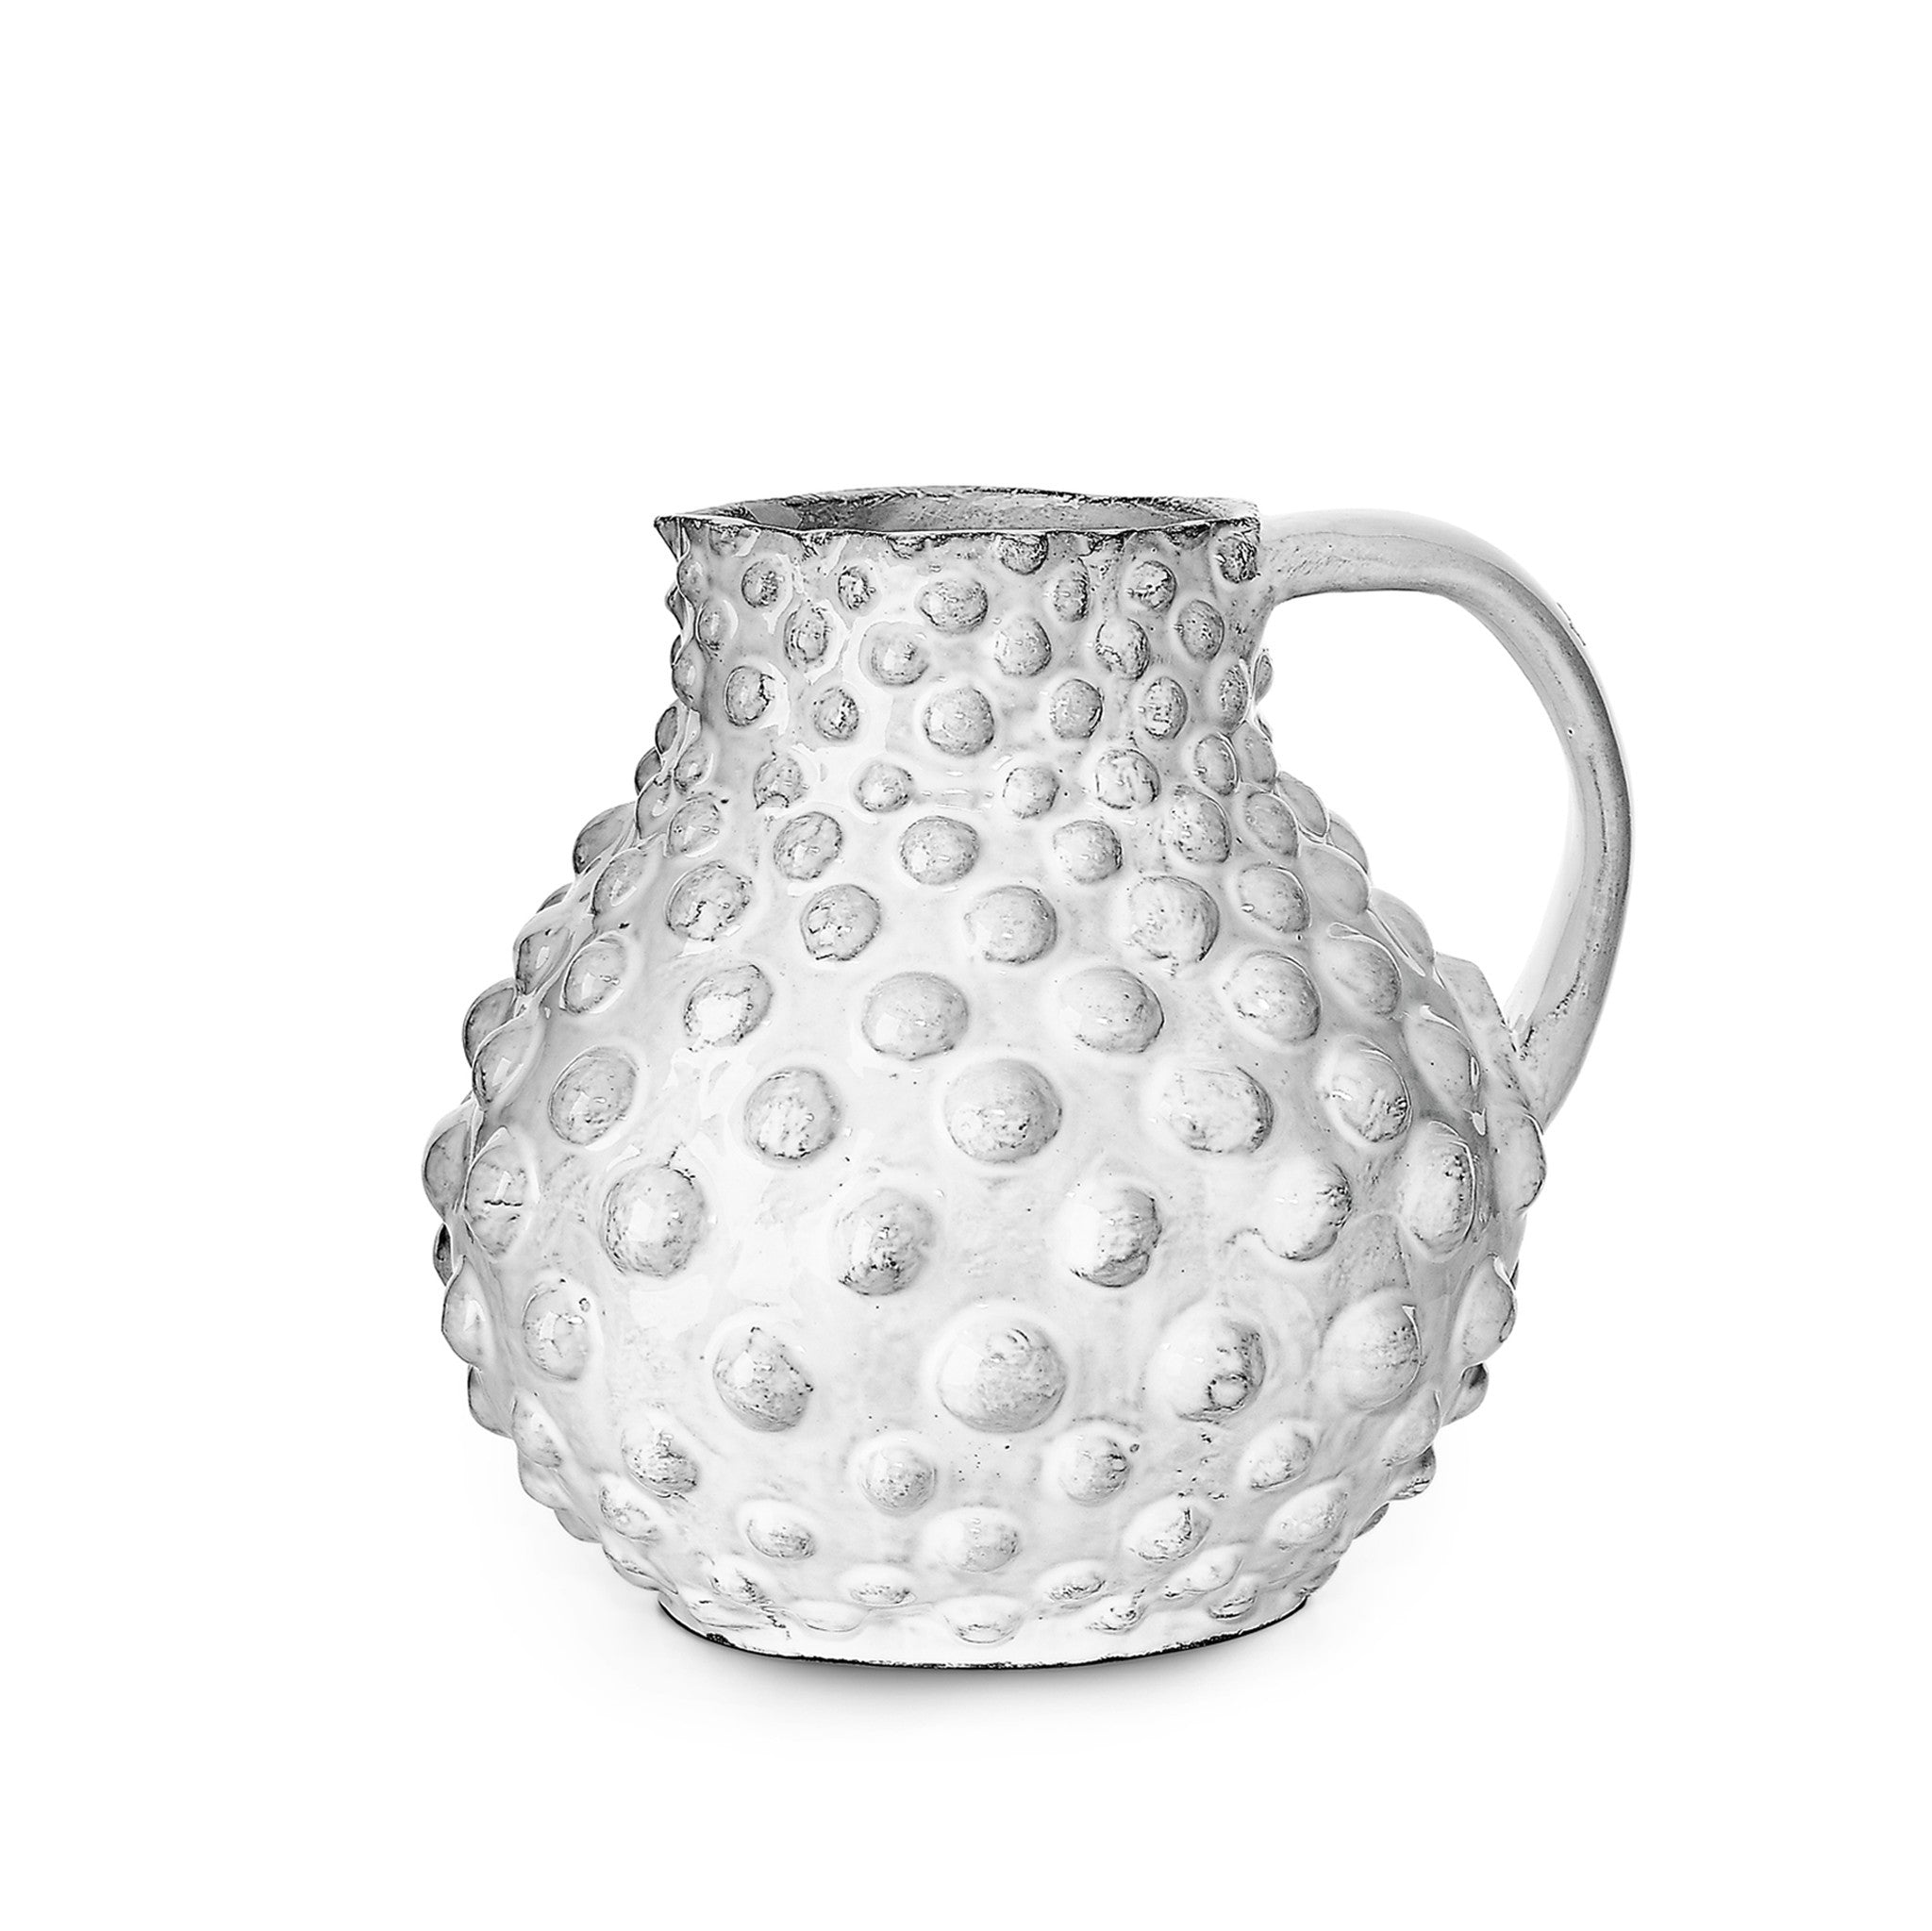 Adelaide Pitcher by Astier de Villatte